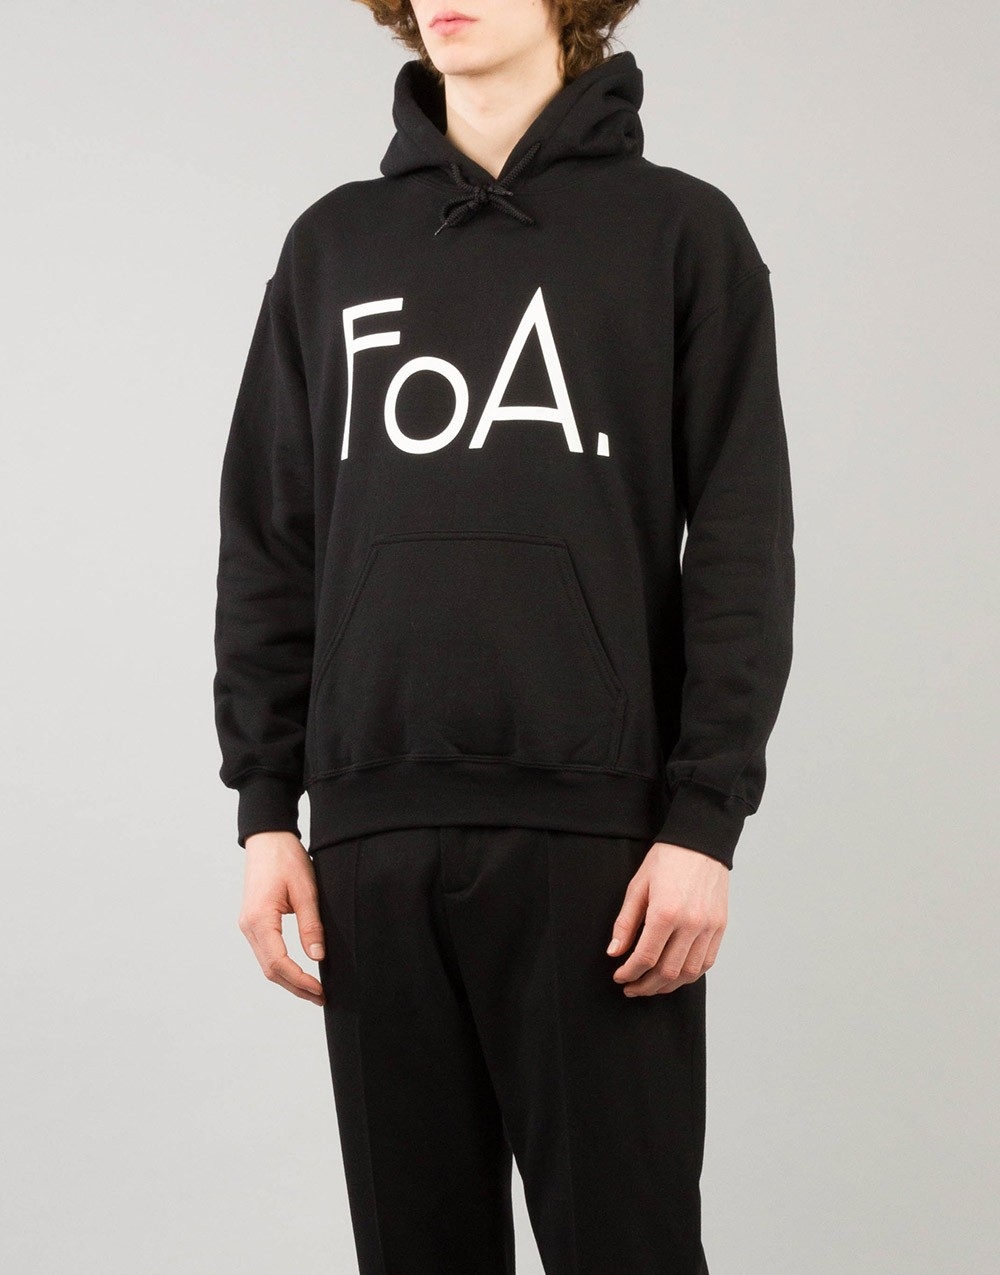 FoA. Logo Sweater Hooded Black